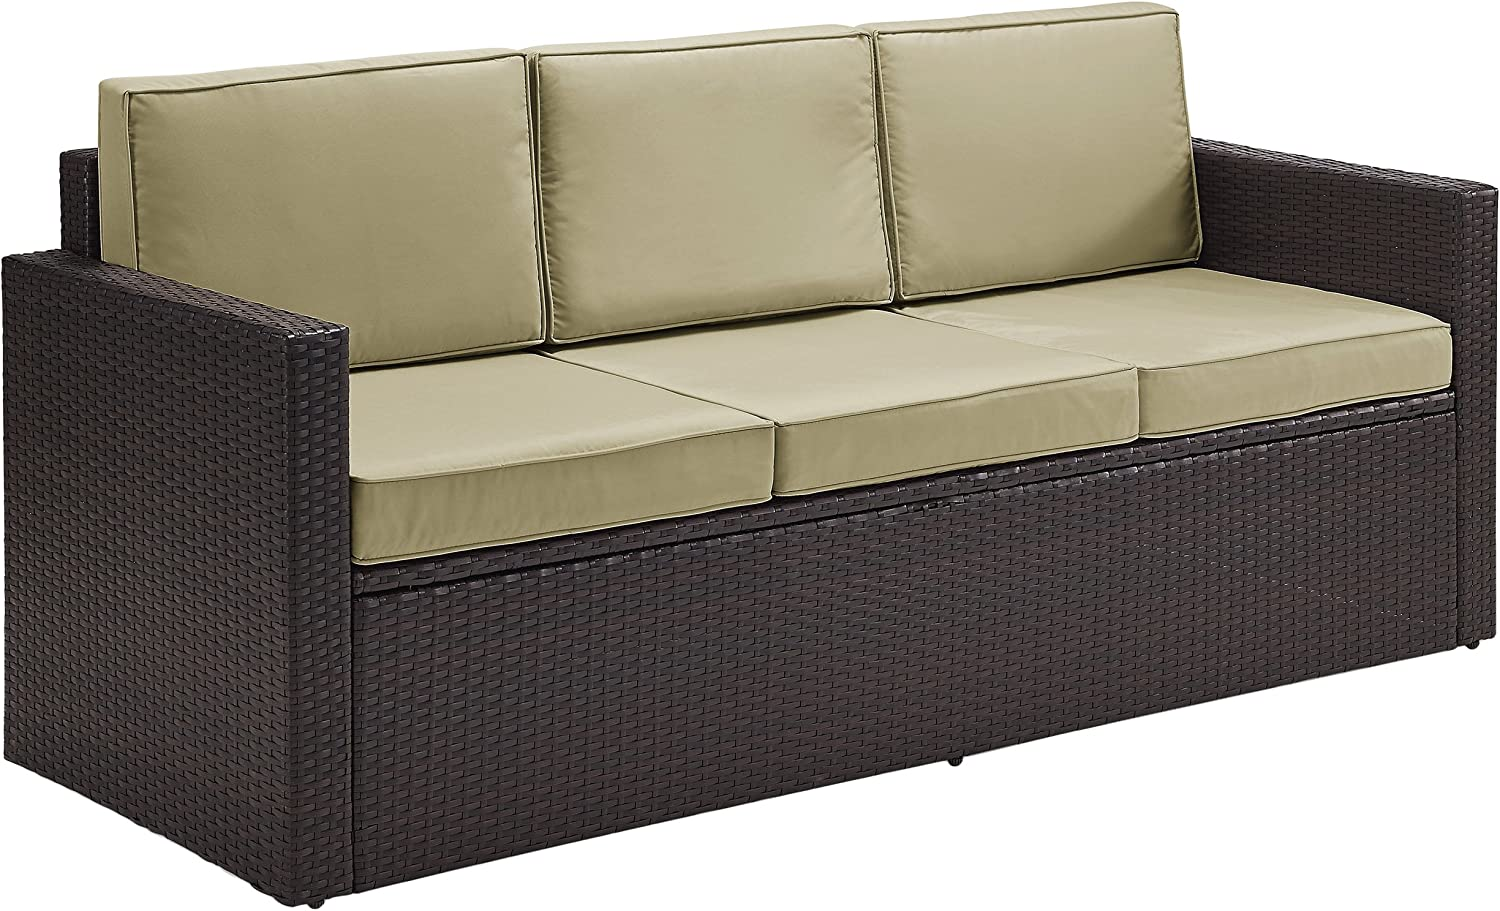 Crosley Furniture KO70048BR-SA Palm Harbor Outdoor Wicker Sofa Sand Cushions, Brown